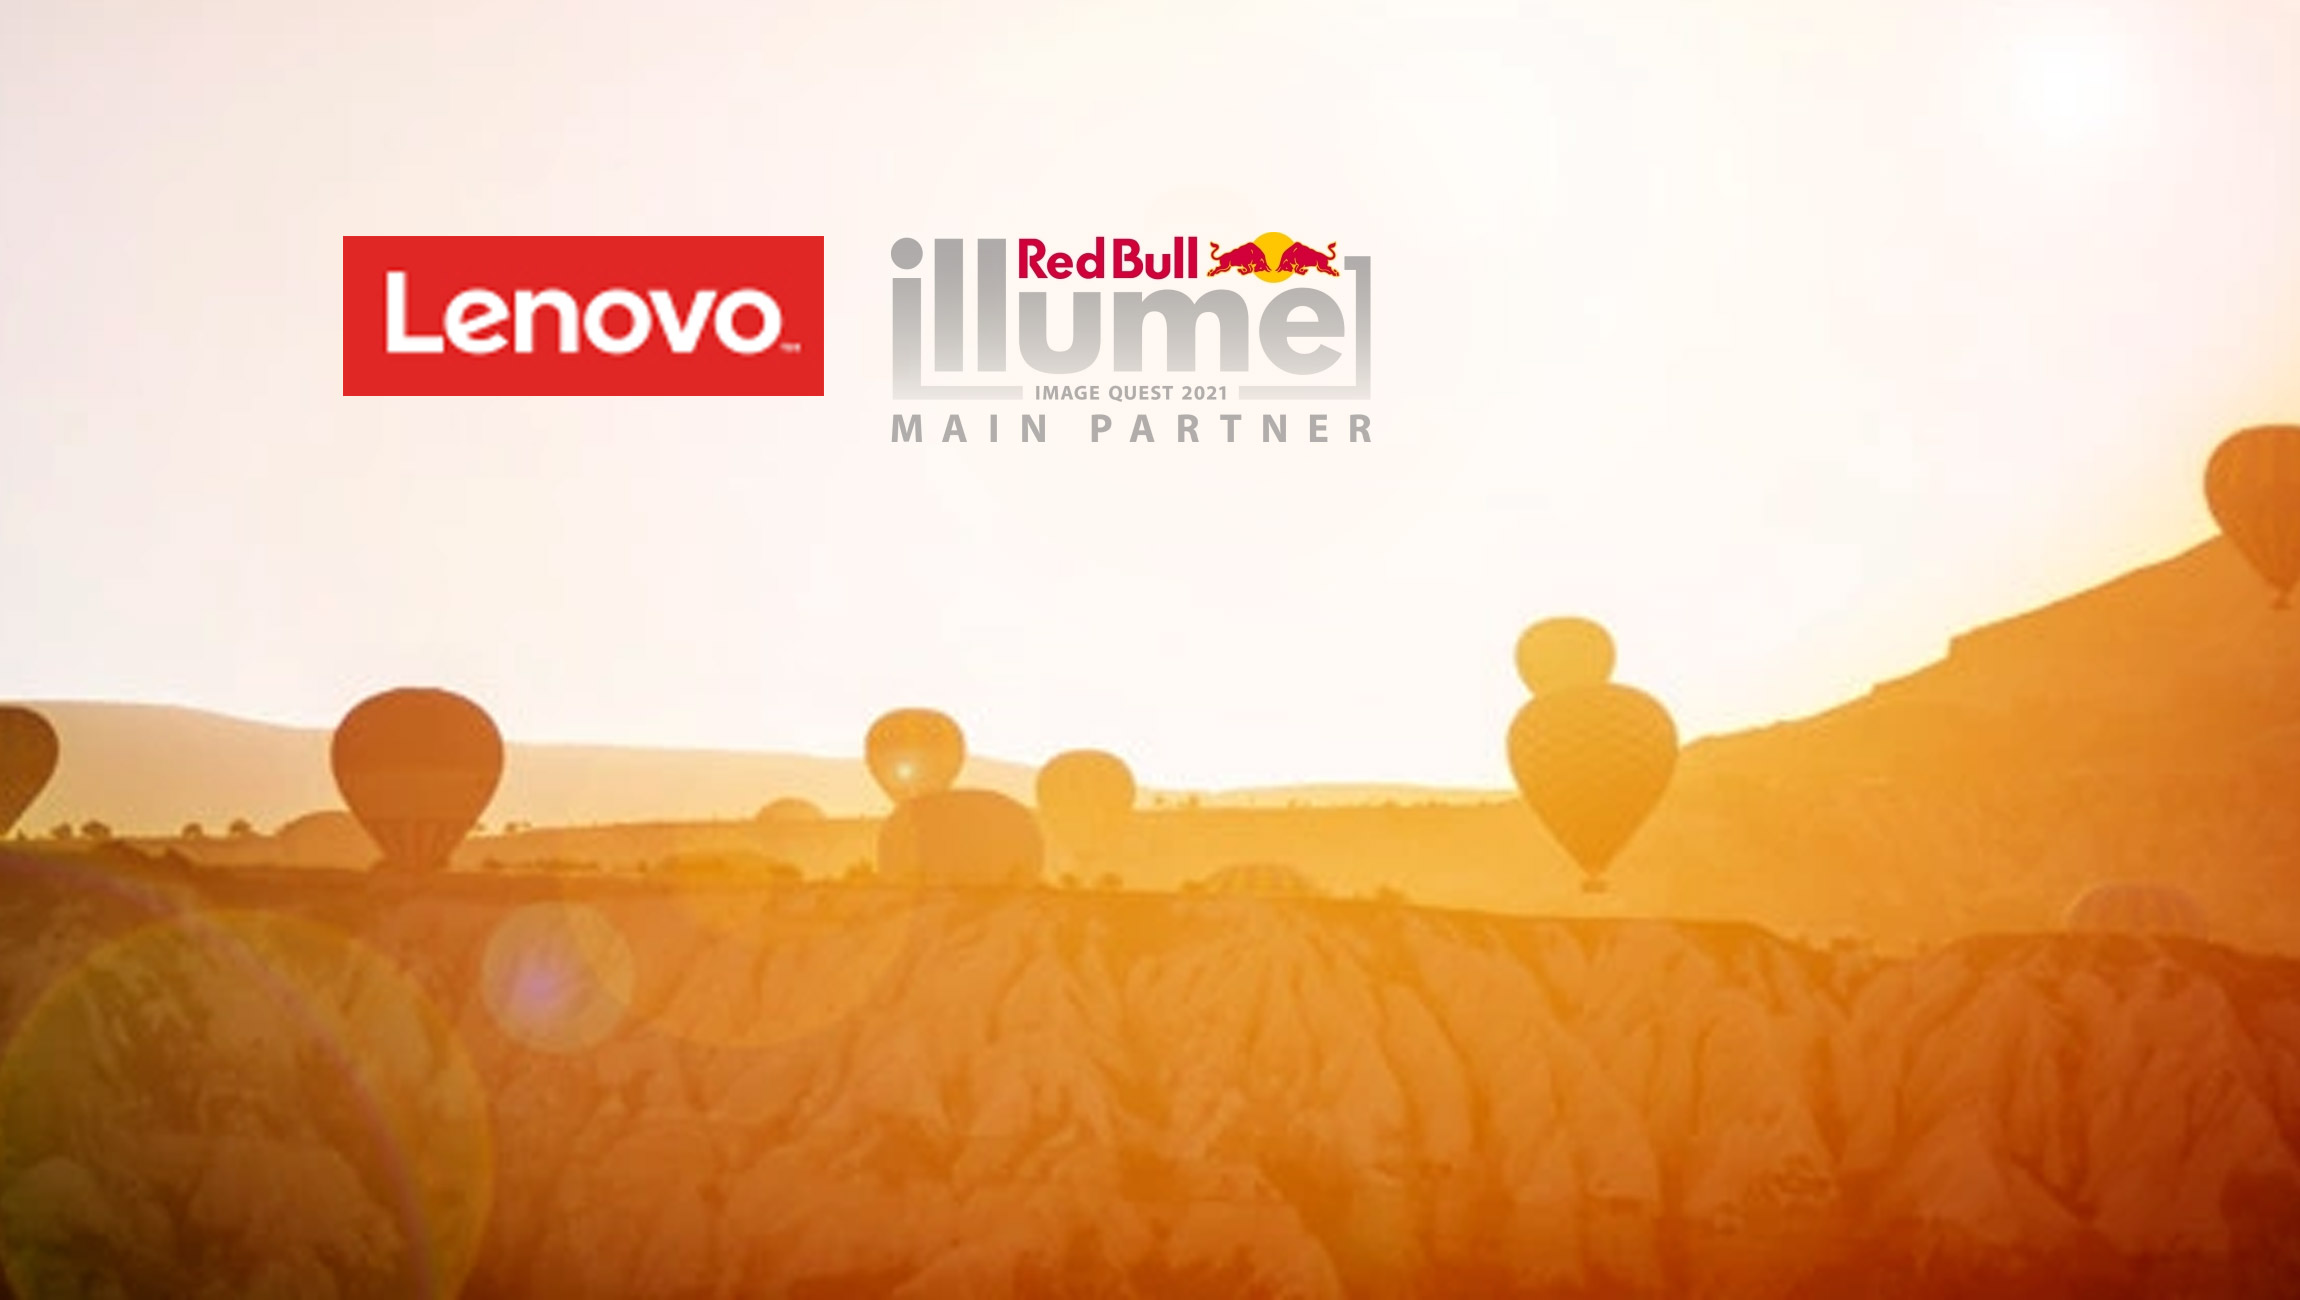 Lenovo to Be Main Sponsor of Red Bull Illume Image Quest 2021